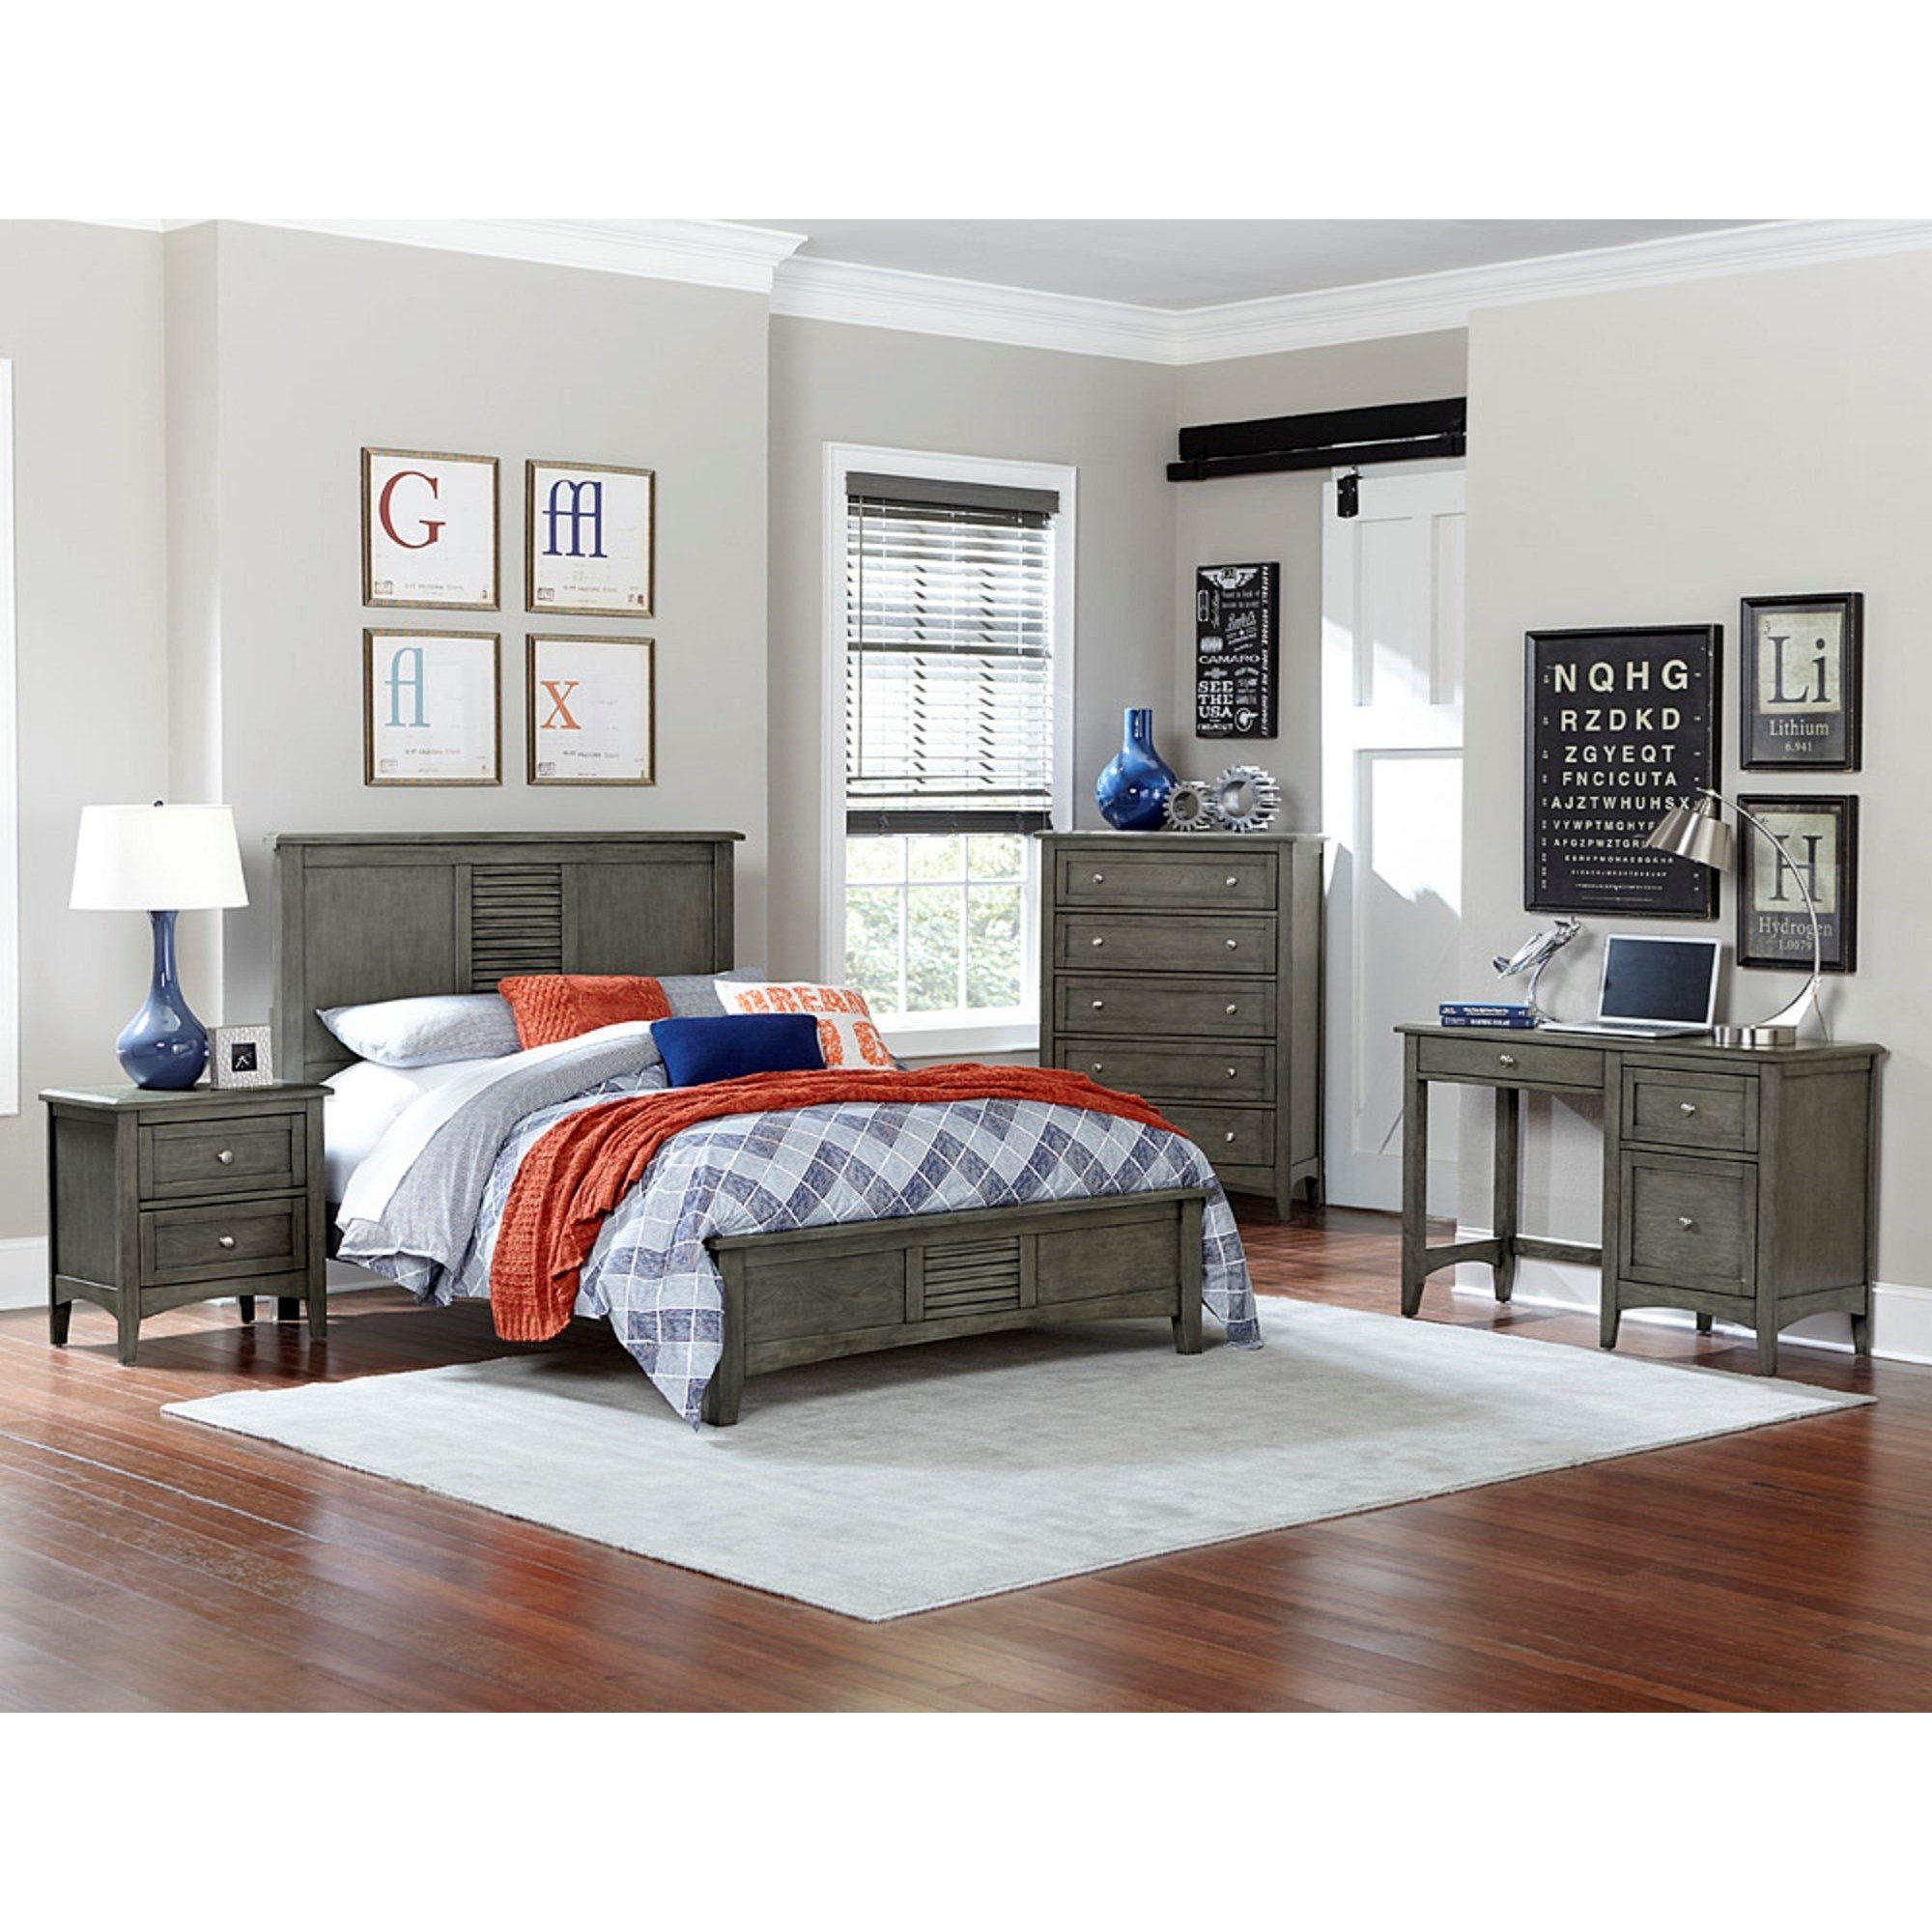 Elegance Garcia Queen Bedroom Group